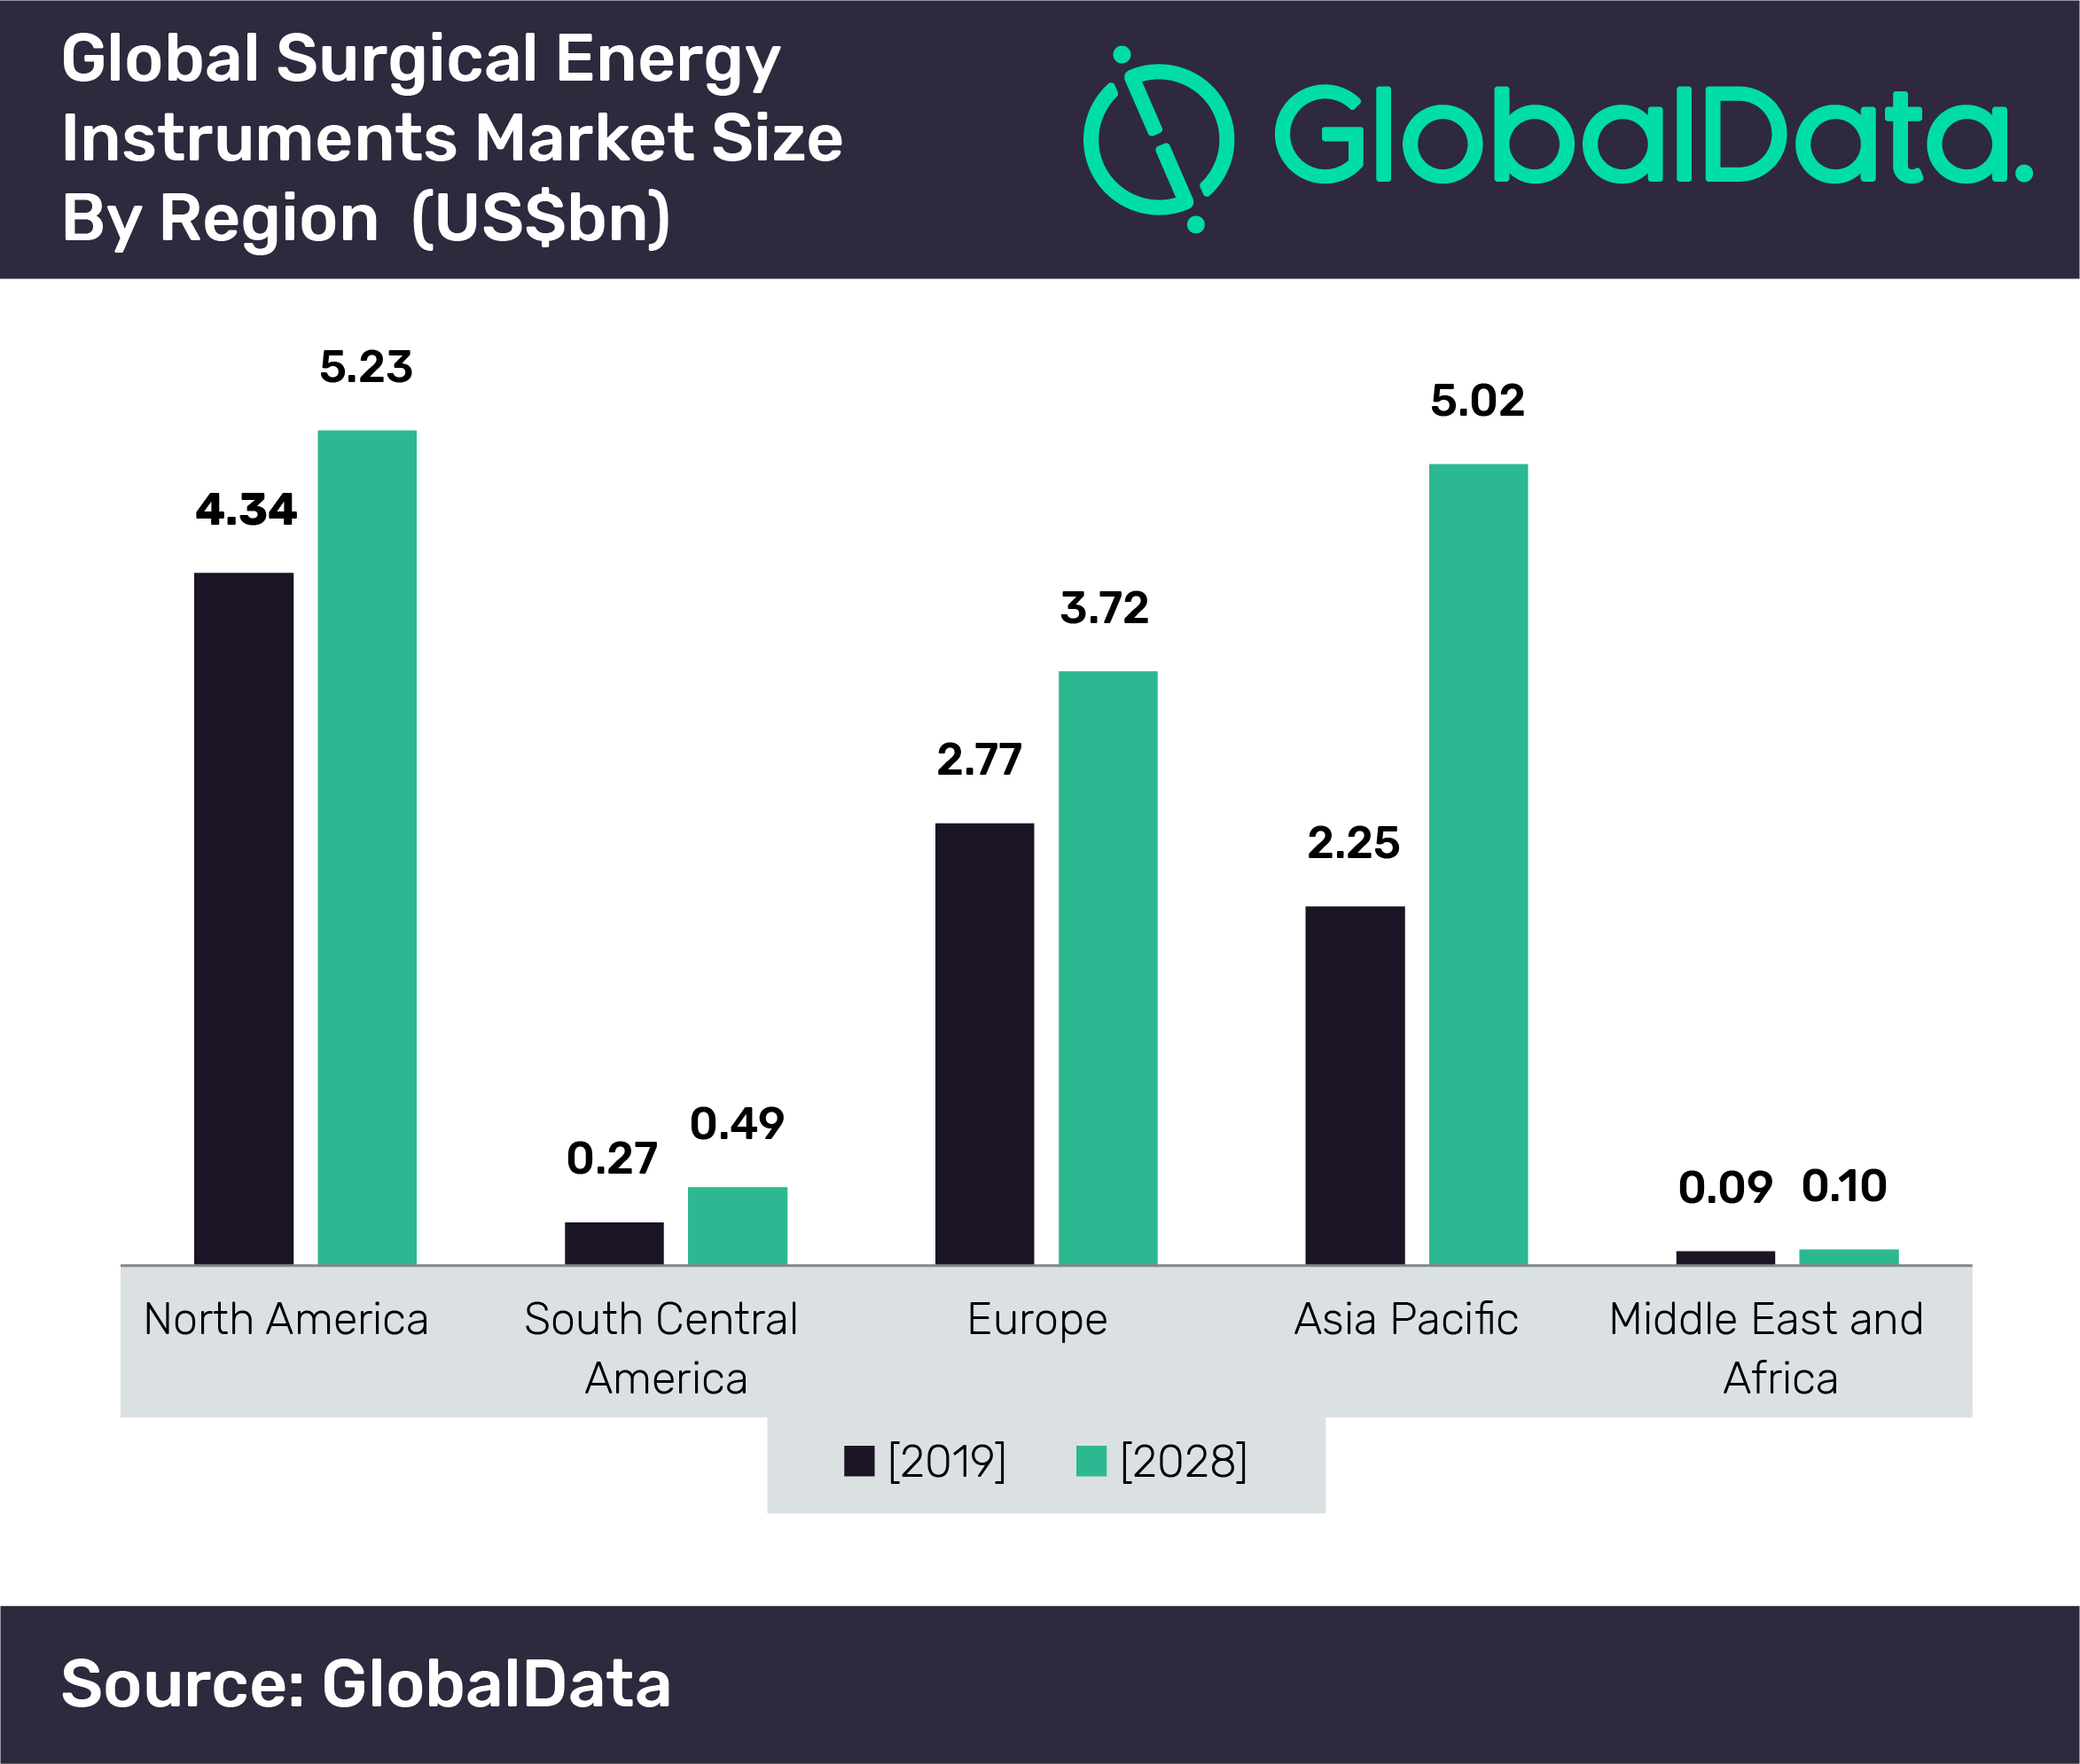 Global surgical energy instruments market set to reach US$14.5bn by 2028, says GlobalData